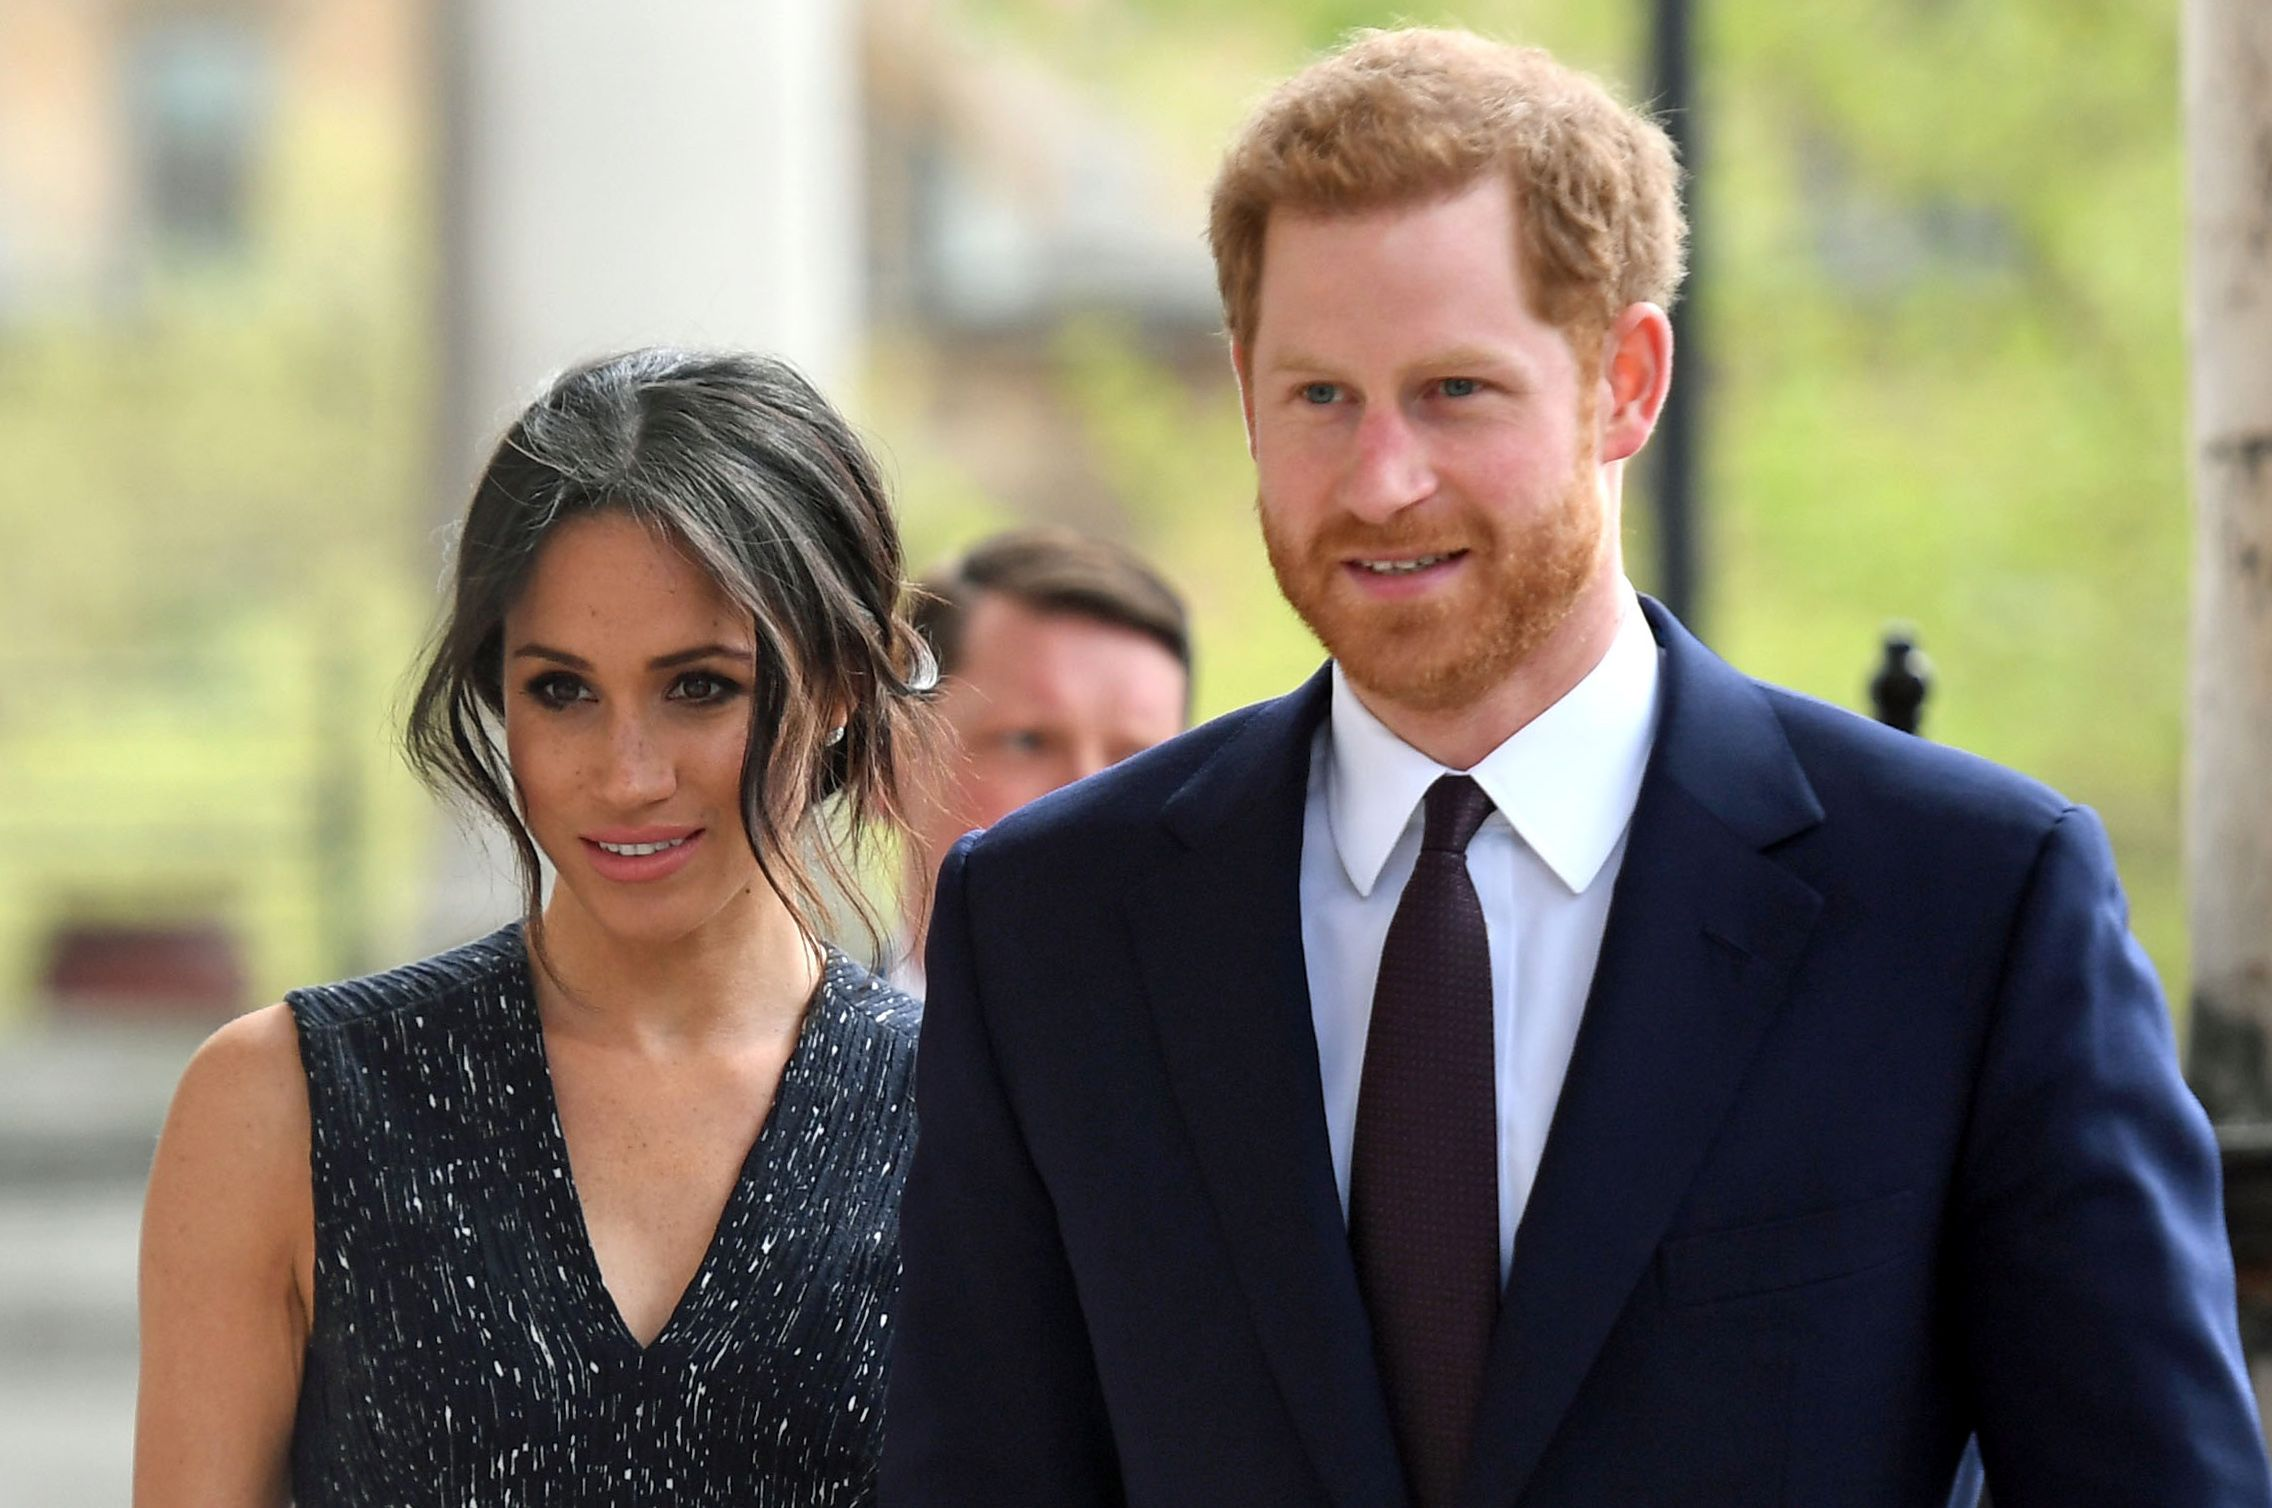 Prince Harry And Meghan Markle Didn t Publicly Wish Prince Charles A Happy Birthday